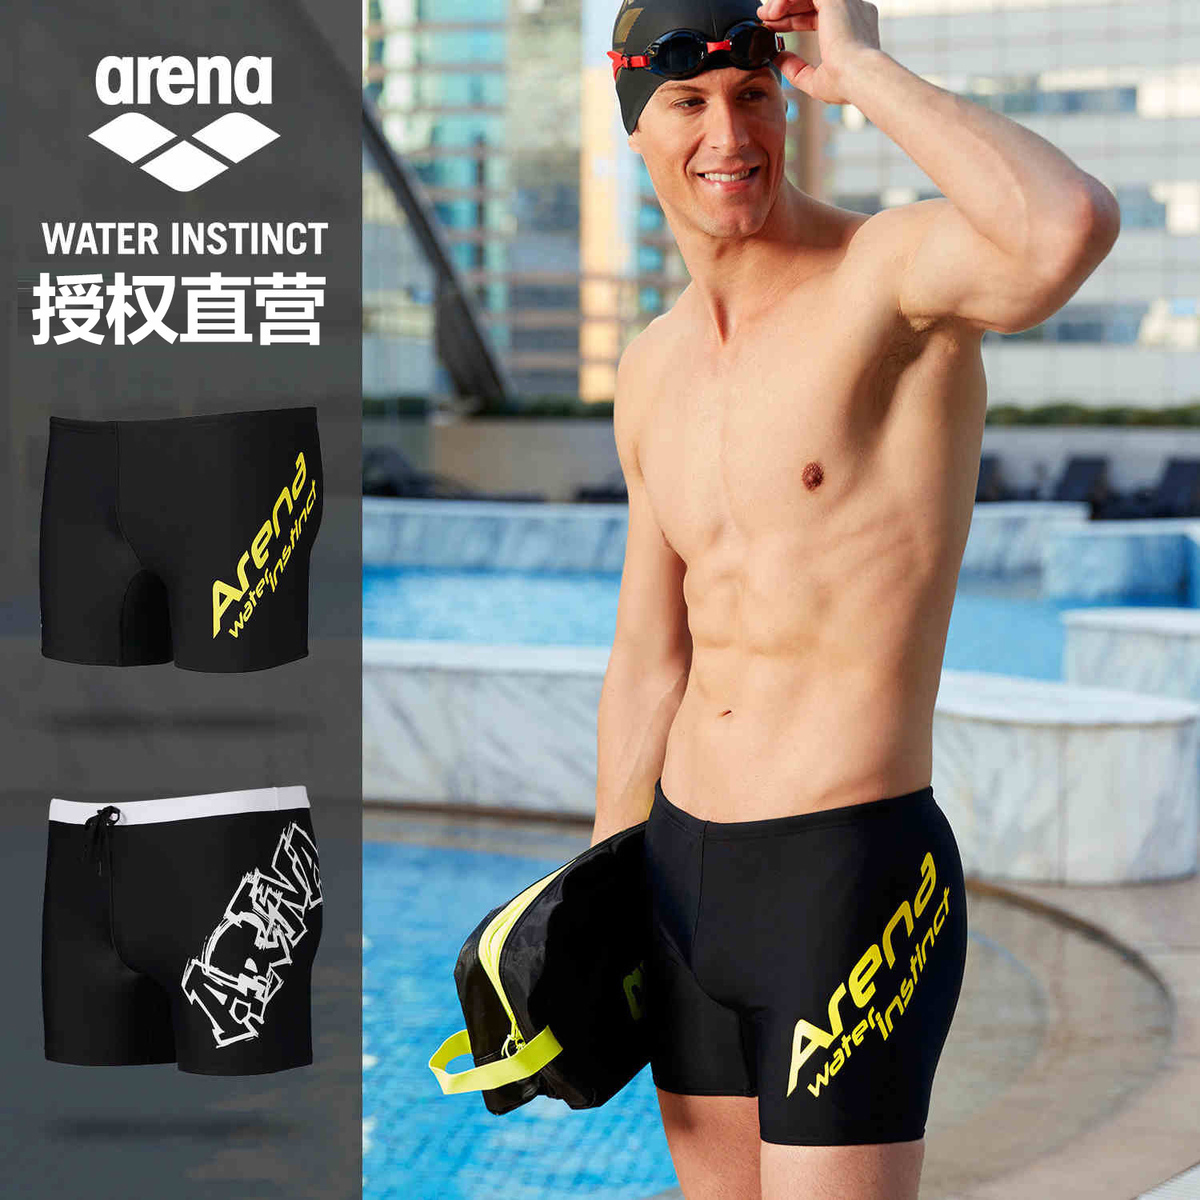 d865bf0e83 arena Arina swimming trunks men's angle professional fashion comfortable  loose large size anti-chlorine quick-drying swimming trunks